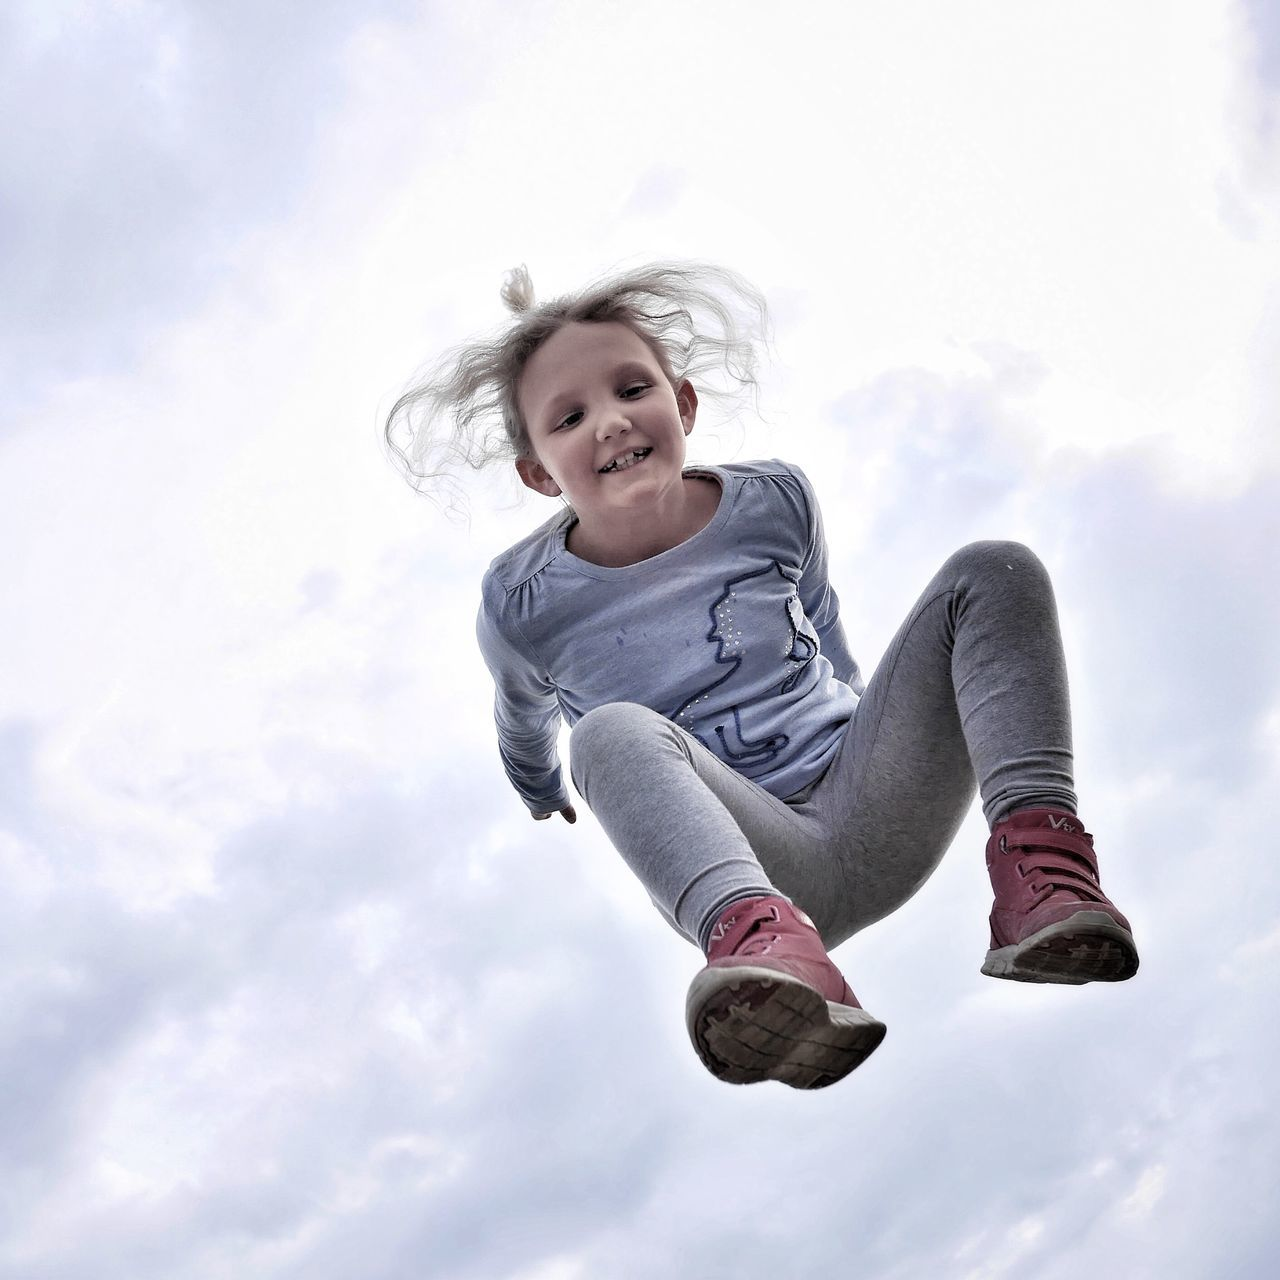 Where's my limit? - MAinLoveWithFreedom and Little Girl Jumping Flying High Flying High Flying Away Like A Bird In The Sky Jump Fly Fly Away Fun Children Children Photography Childhood Happiness Joy Joy Of Life No Limit No Limits Different Perspective How I Feel At Times How I See People How I See The World - #Ahorn #Sportpark #Paderborn